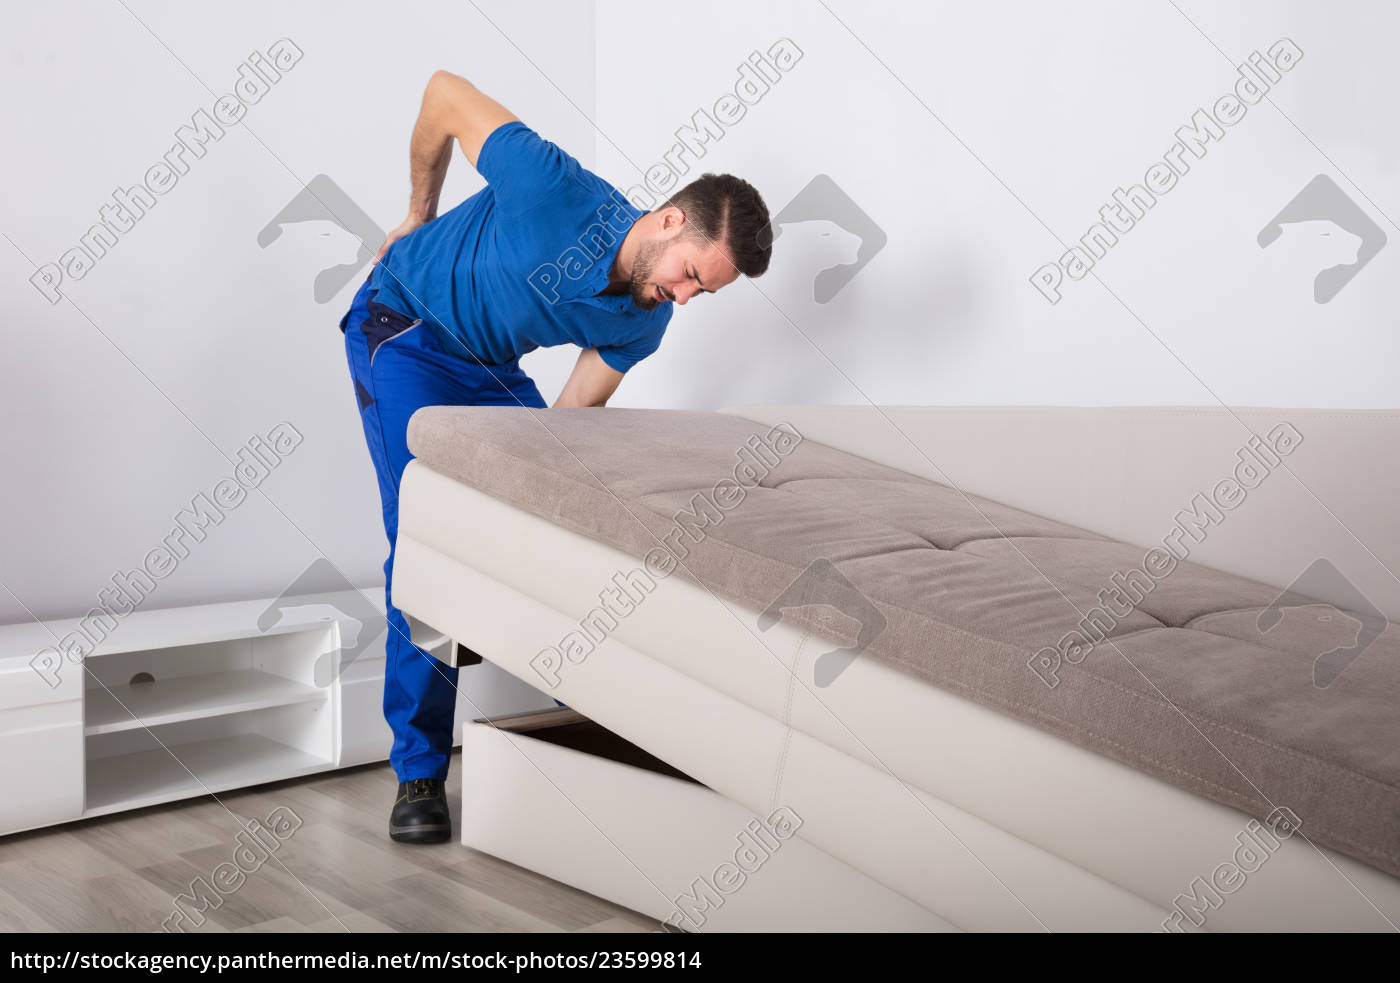 mover, suffering, from, backpain, while, lifting - 23599814